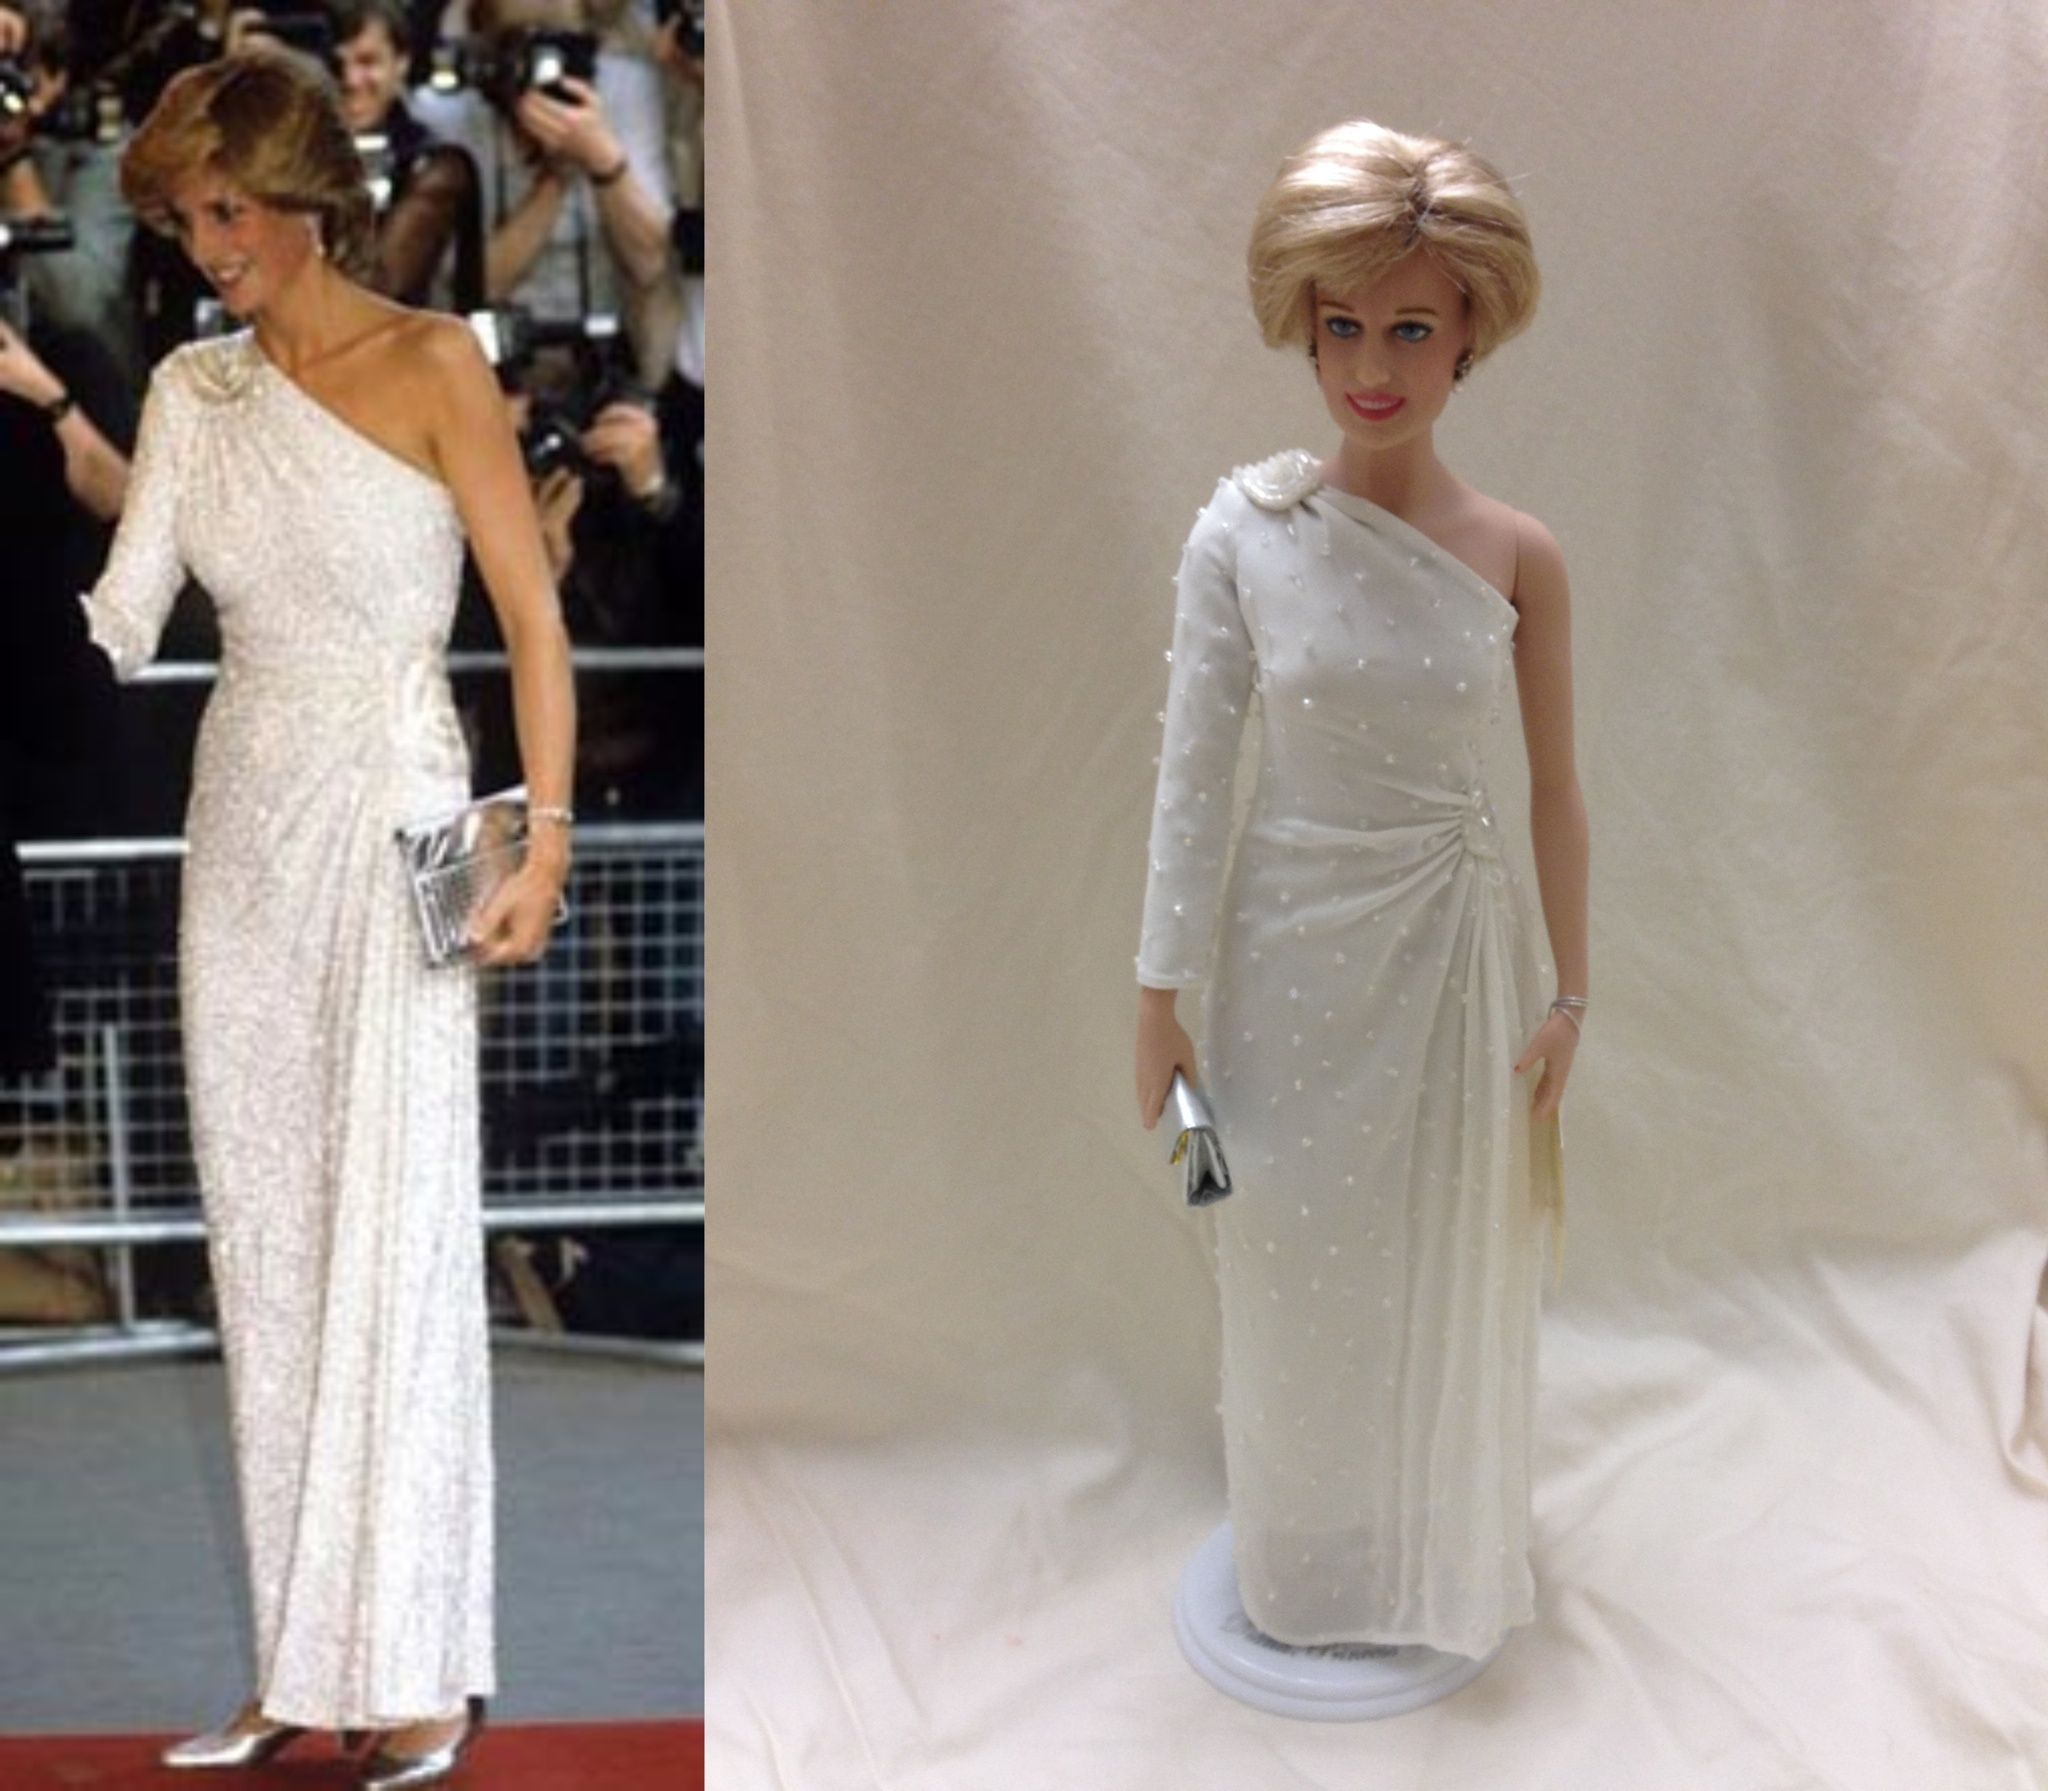 Franklin Mint Princess Diana Hachi doll made by Japanese designer Hachi. It is a one shoulder white columnar dress embroidered from top to bottom with crystals and translucent glass beads. Diana first wore this at a gala in Melbourne, Australia in 1983. She wore this gown many times after that gala.  She also wore this during the photo shoot with Mario Testino. Christie's auction lot #20 #Princess Diana dolls #Franklin Mint dolls #Princess Diana Hachi Doll